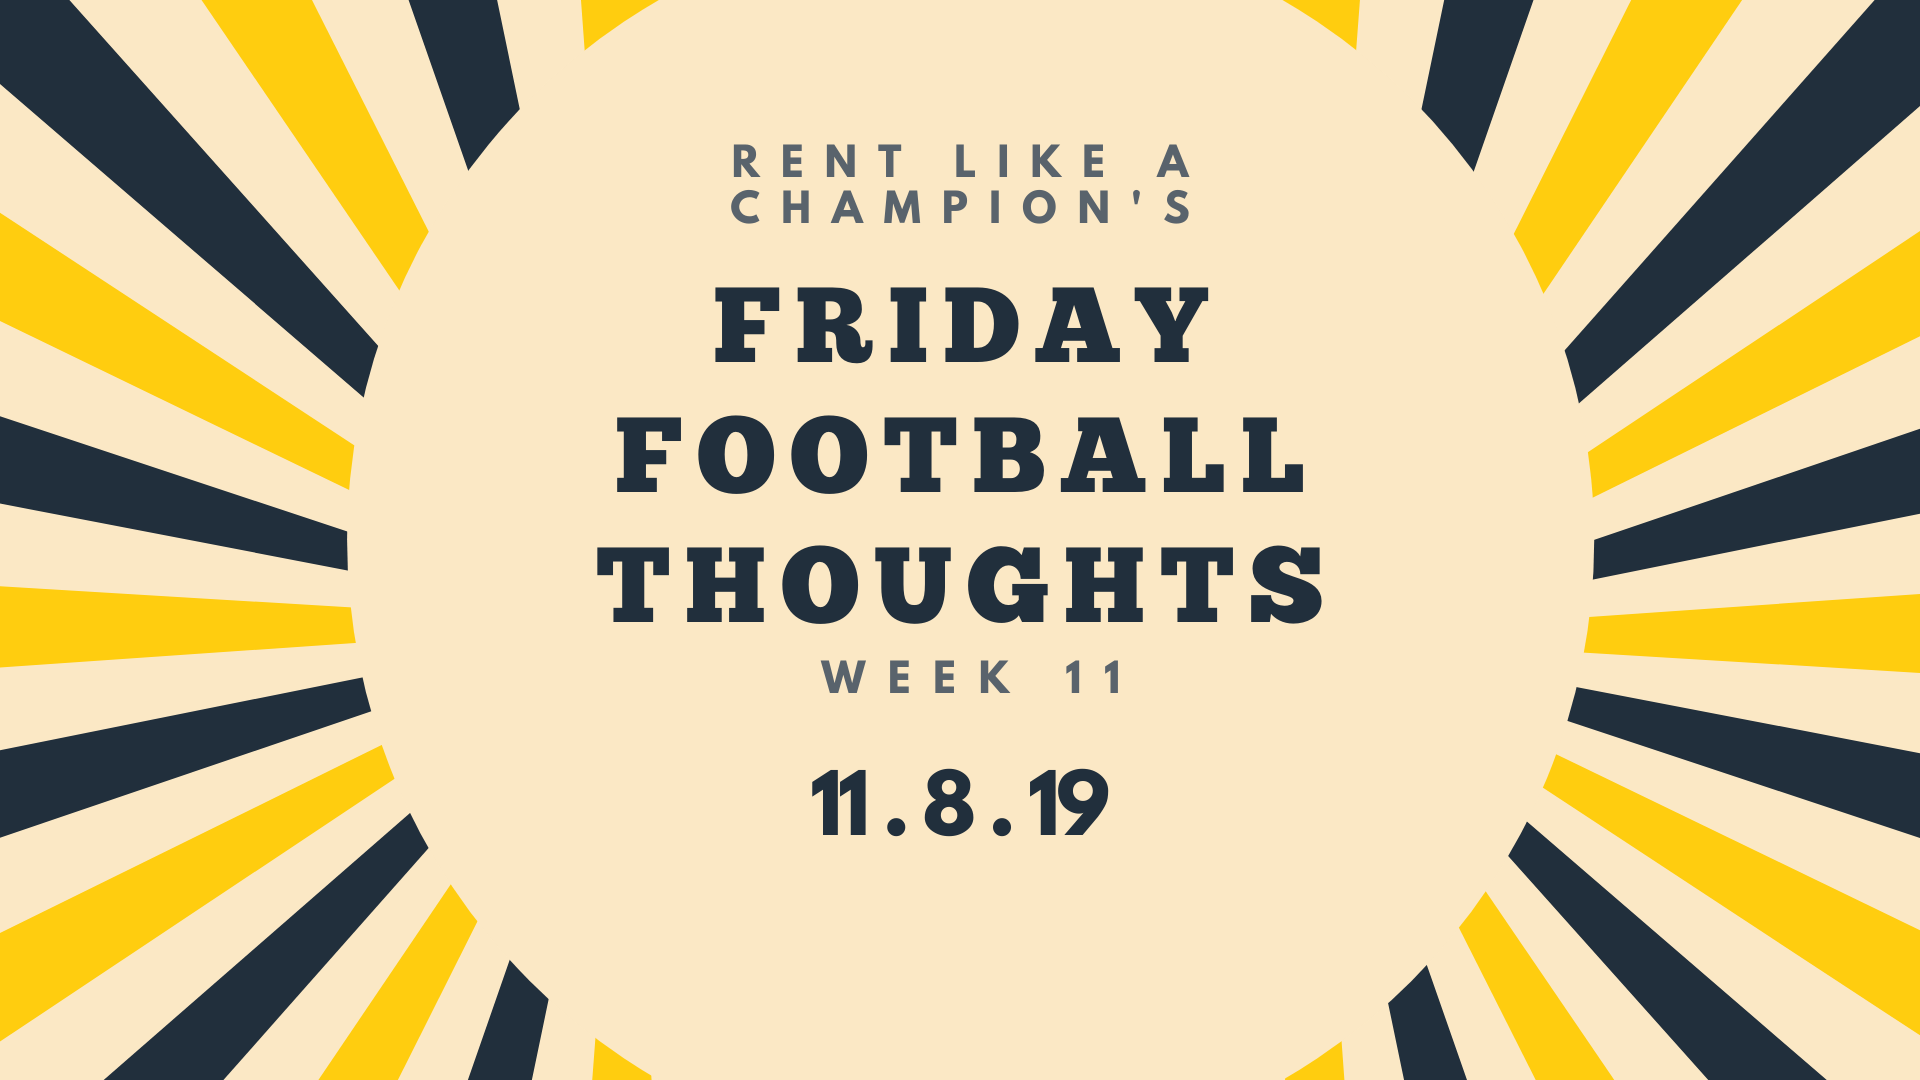 Friday Football Thoughts Template (3)